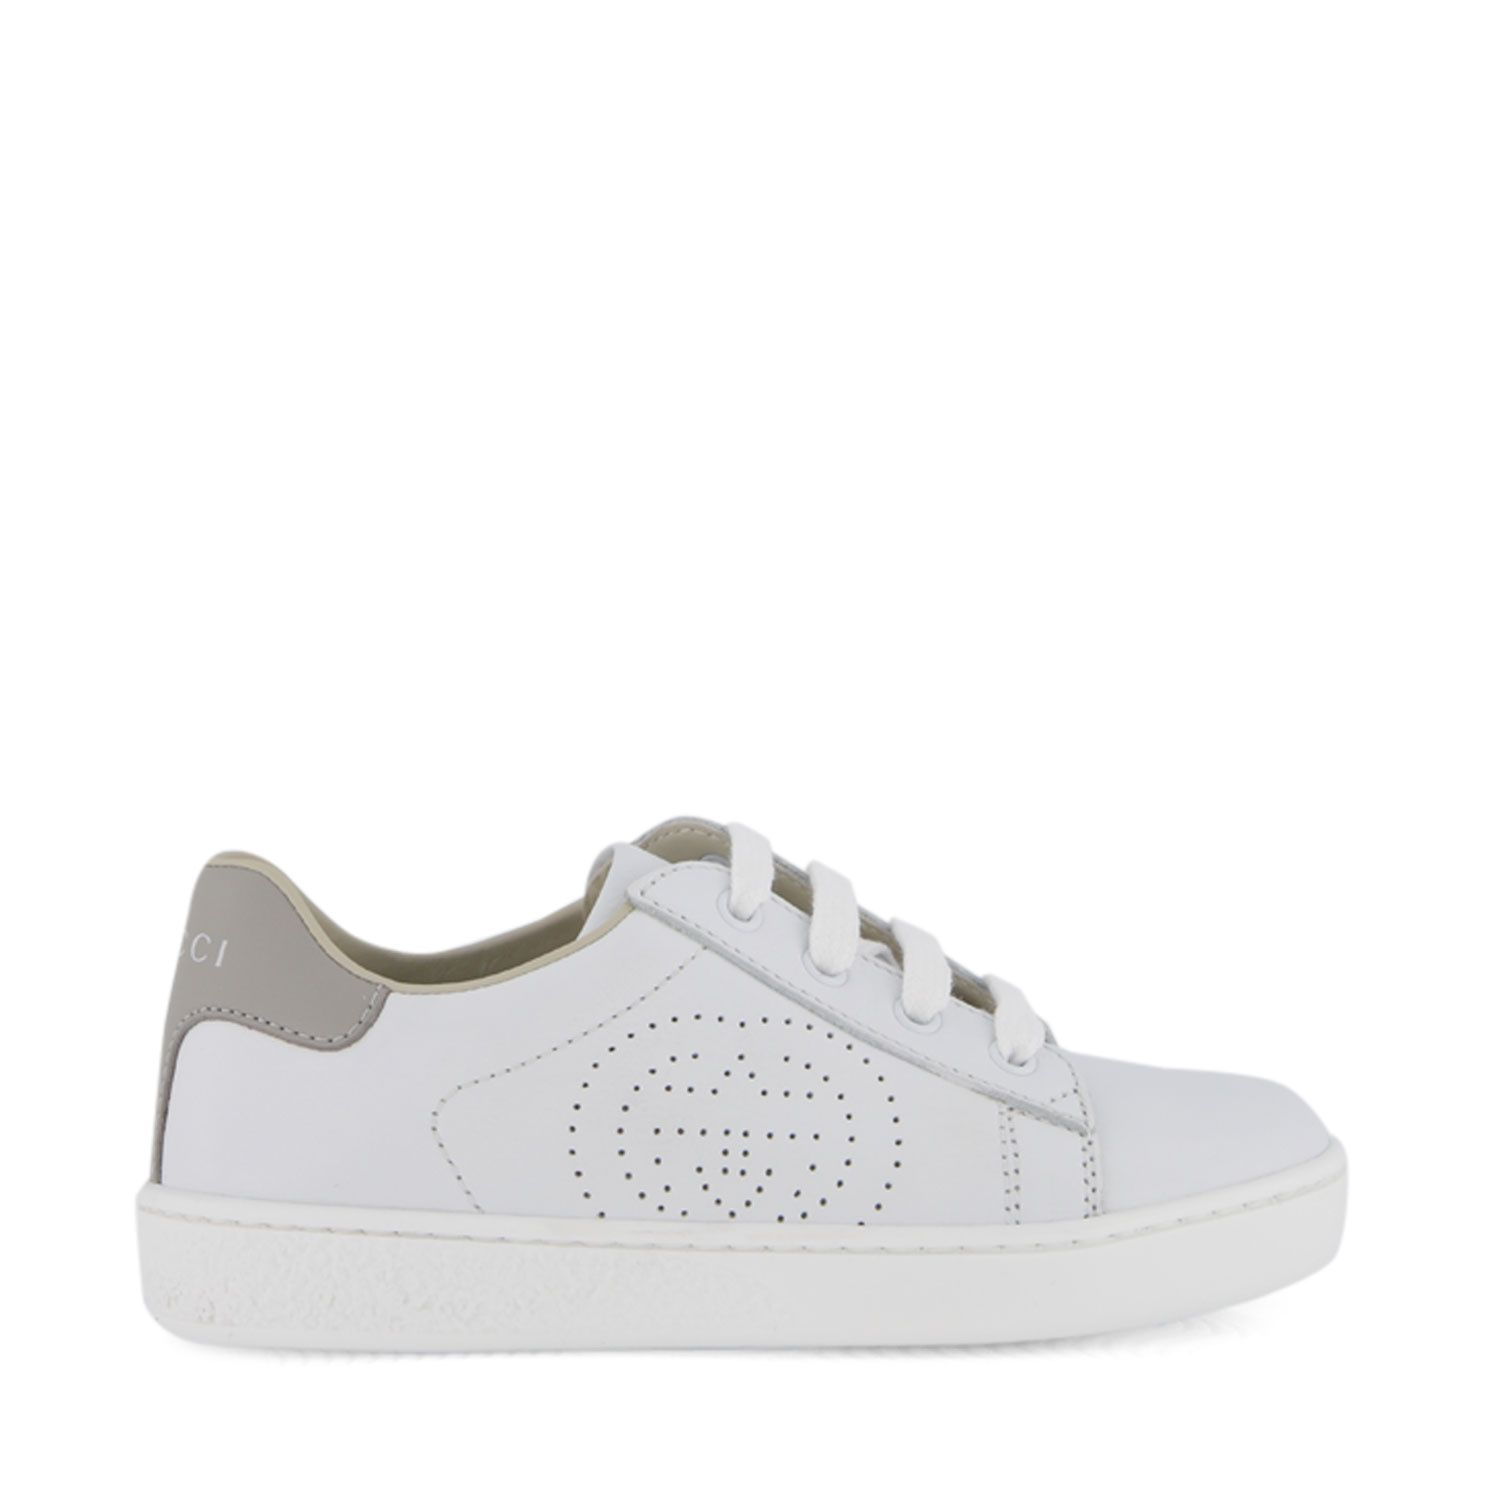 Picture of Gucci 626624 kids sneakers white